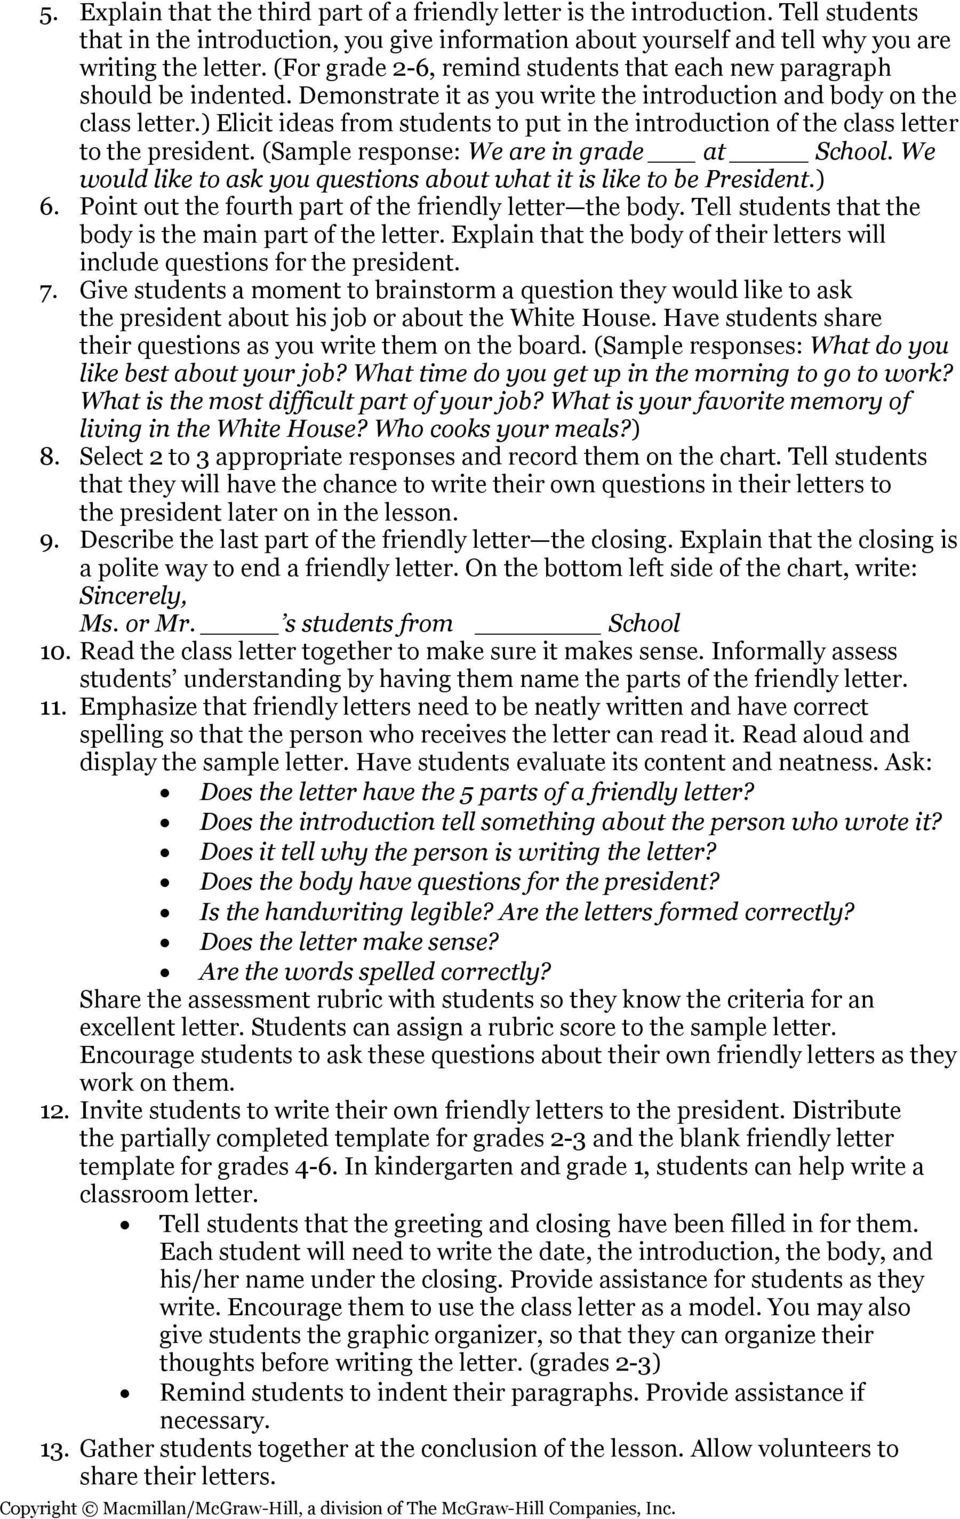 ) Elicit ideas from students to put in the introduction of the class letter to the president. (Sample response: We are in grade at School.